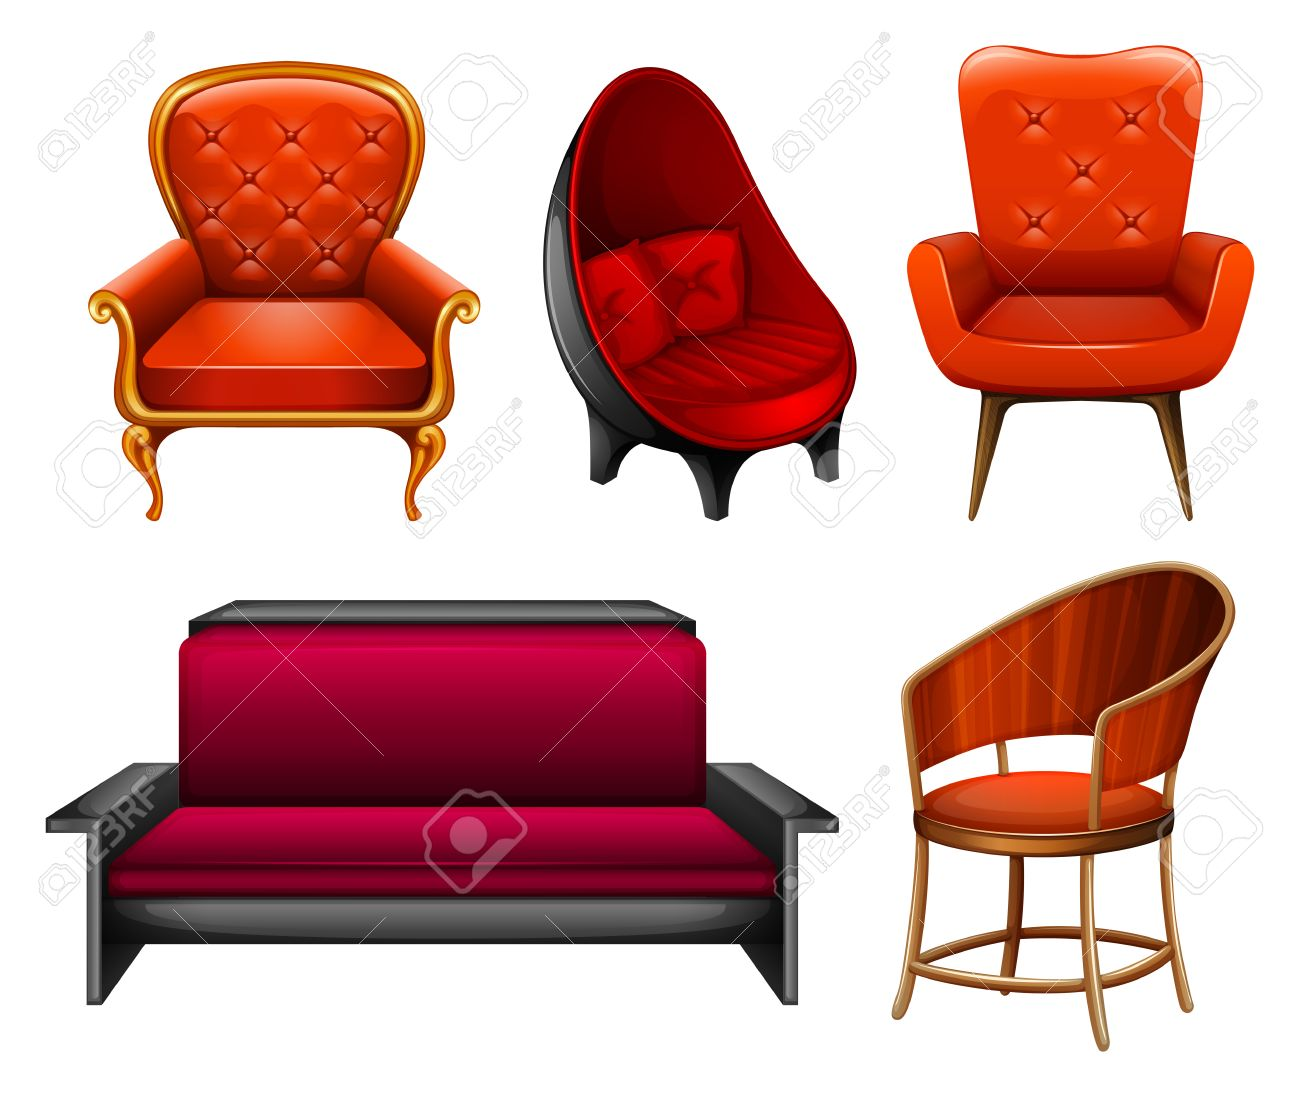 Different Kind Of Chairs In Red Royalty Free Cliparts, Vectors, And ...